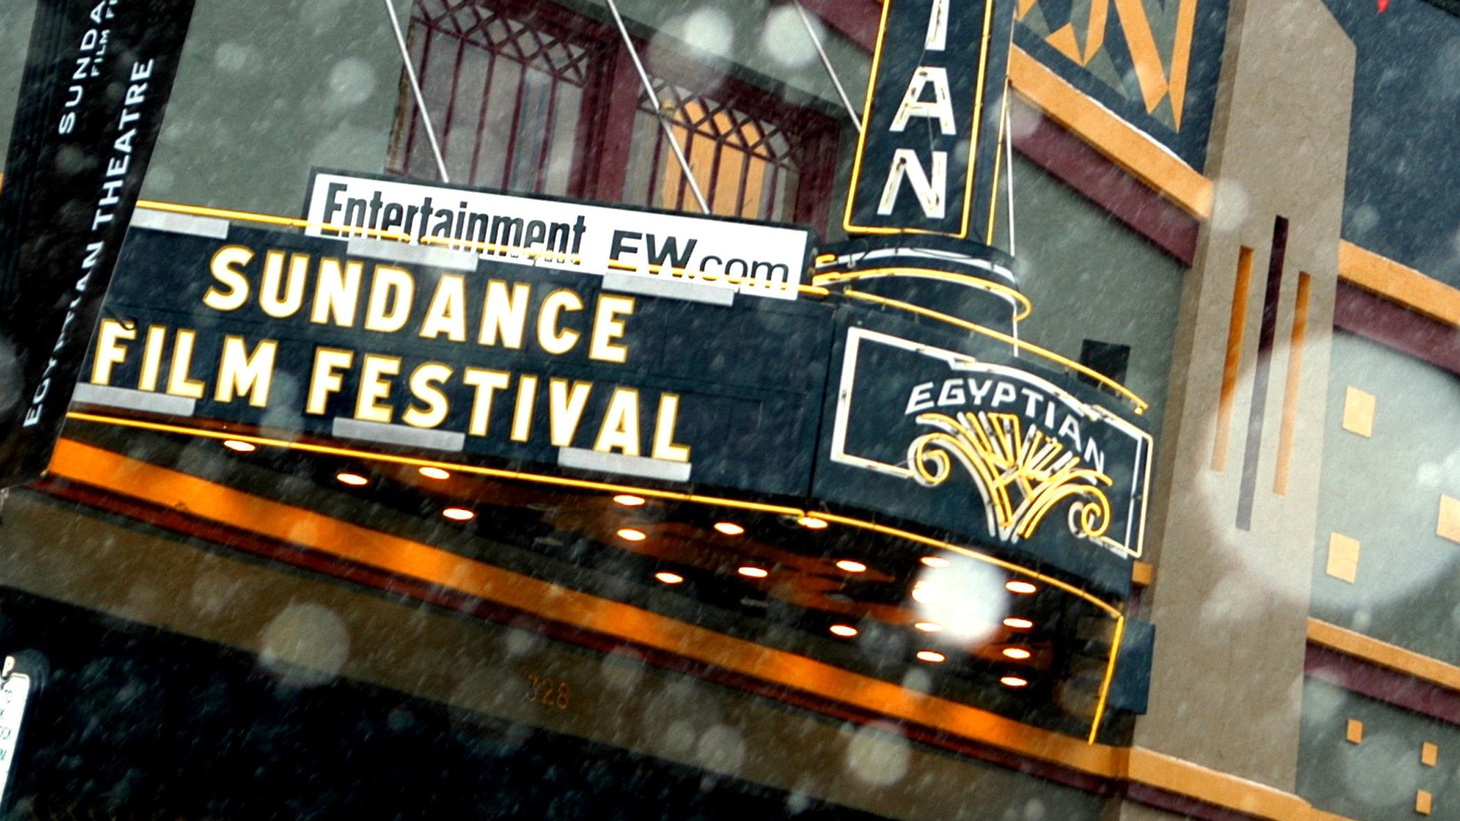 We get an advance look at the Sundance Film Festival plus how Mortified went from stage to TV screen.